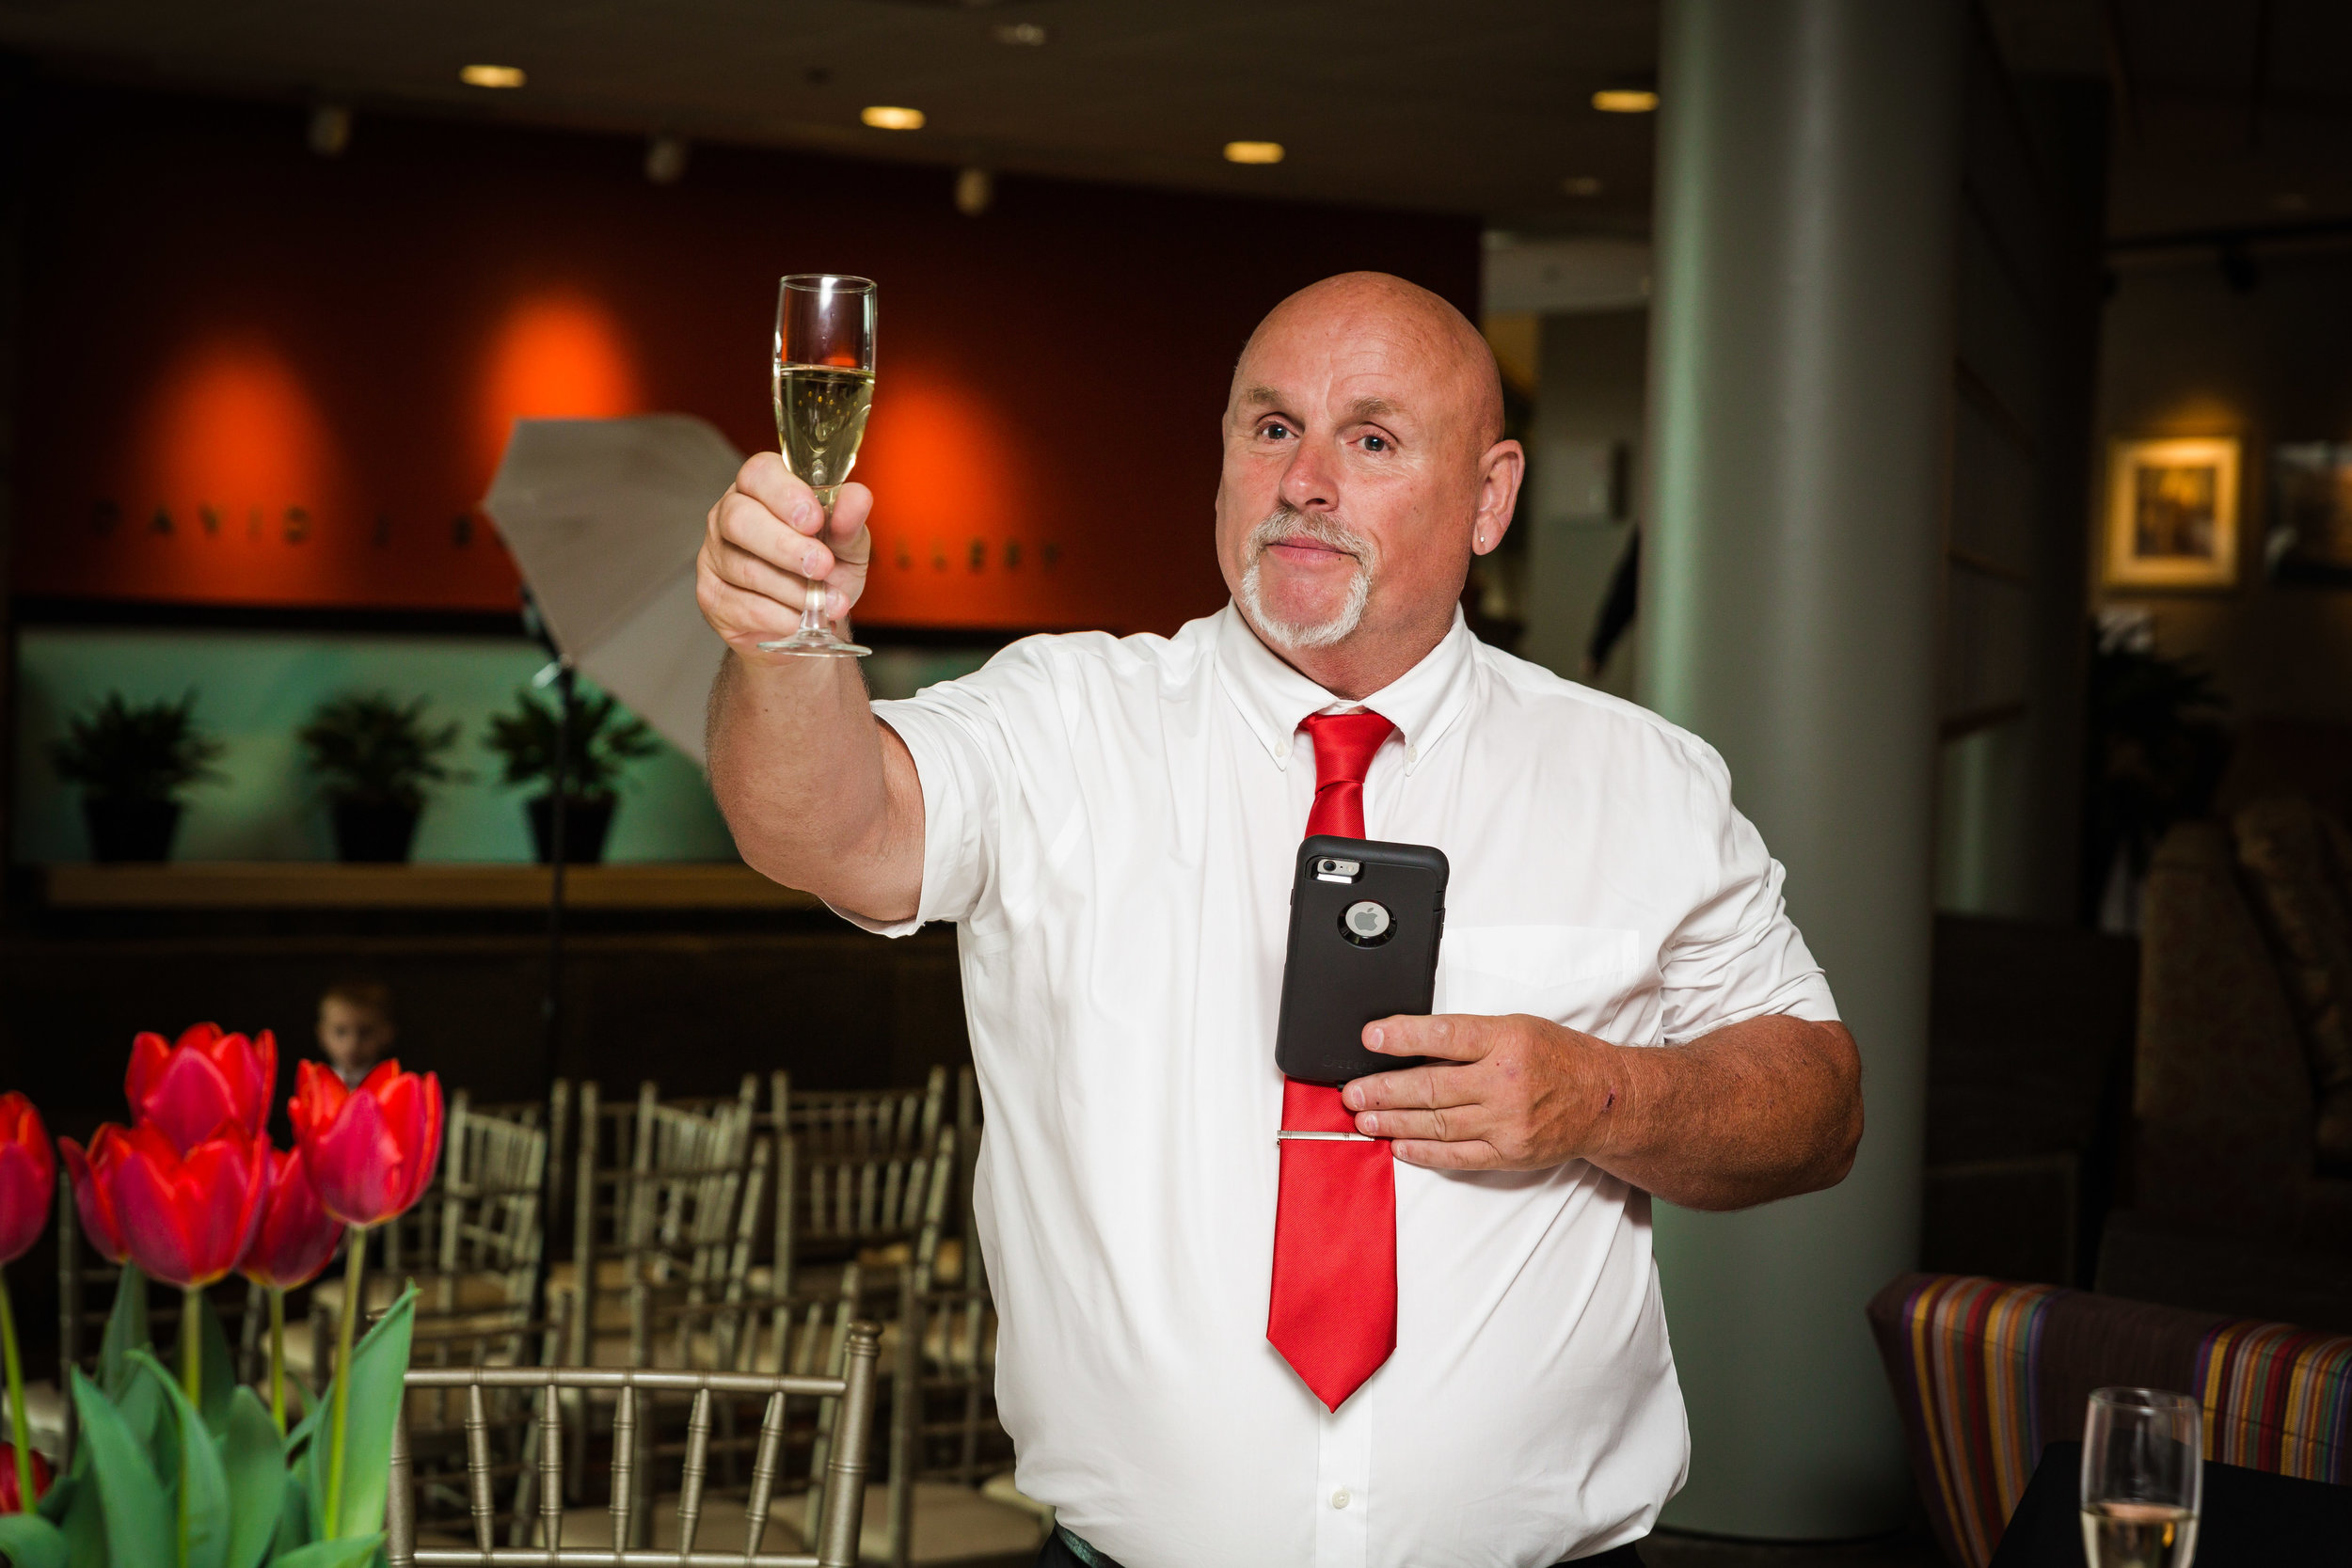 CHAUNCEY HOTEL AND CONFERENCE CENTER WEDDING PHOTOGRAPHY-80.jpg